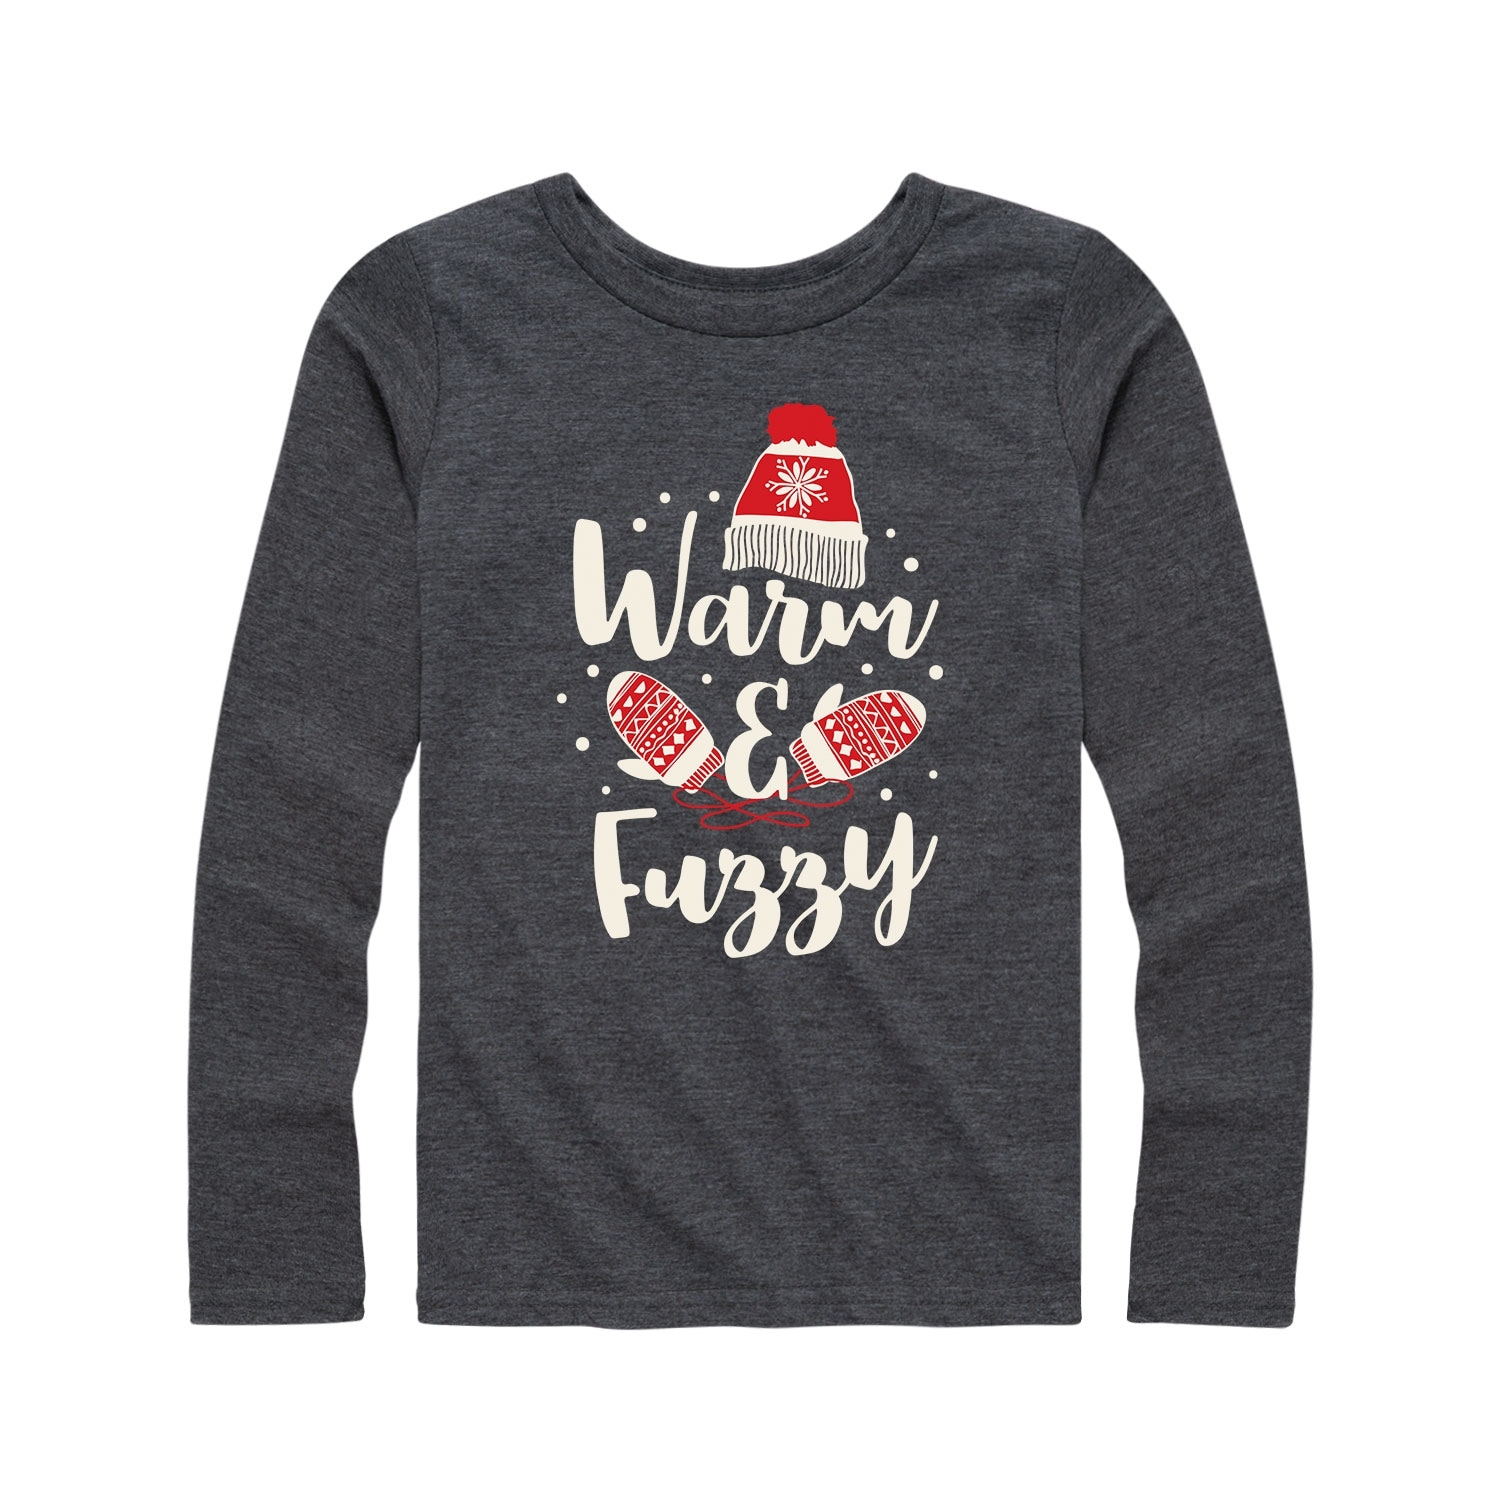 Personalized Address Entryway Cotton Toddler Long Sleeve Ruffle Shirt Top